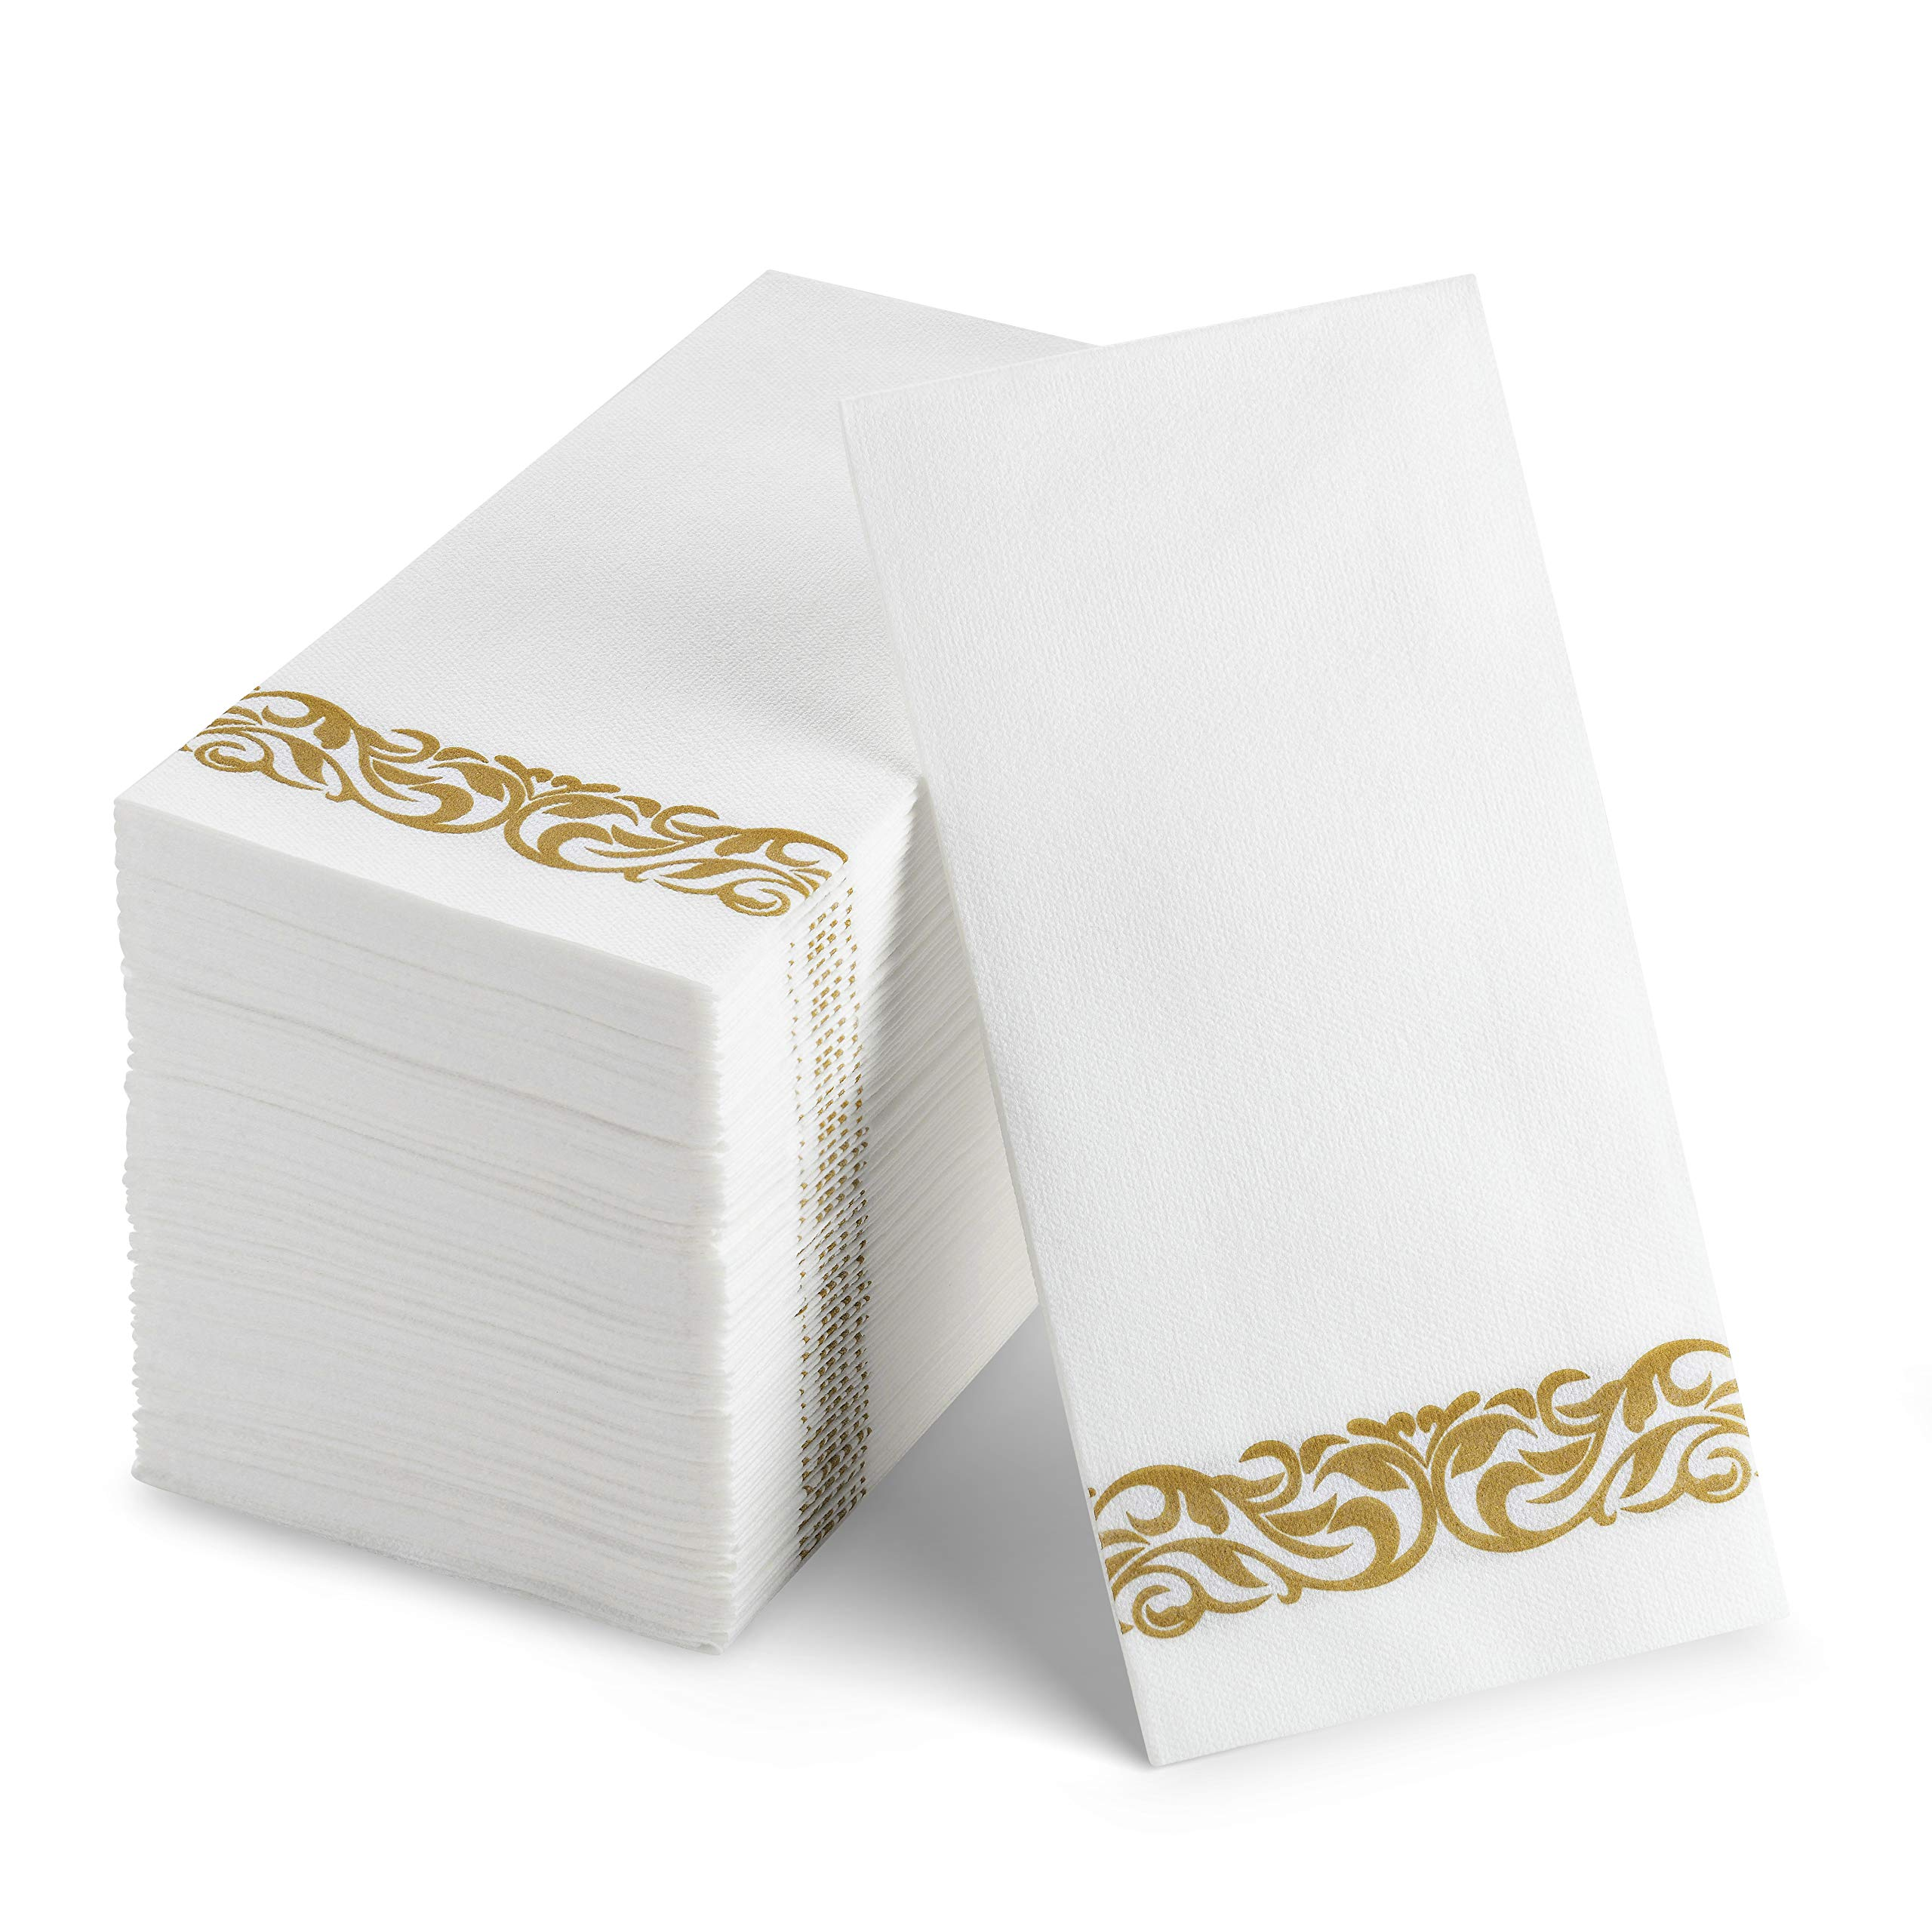 100 Disposable Guest Towels Soft and Absorbent Linen-Feel Paper Hand Towels Durable Decorative Bathroom Hand Napkins Good for Kitchen, Parties, Weddings, Dinners or Events White and Gold